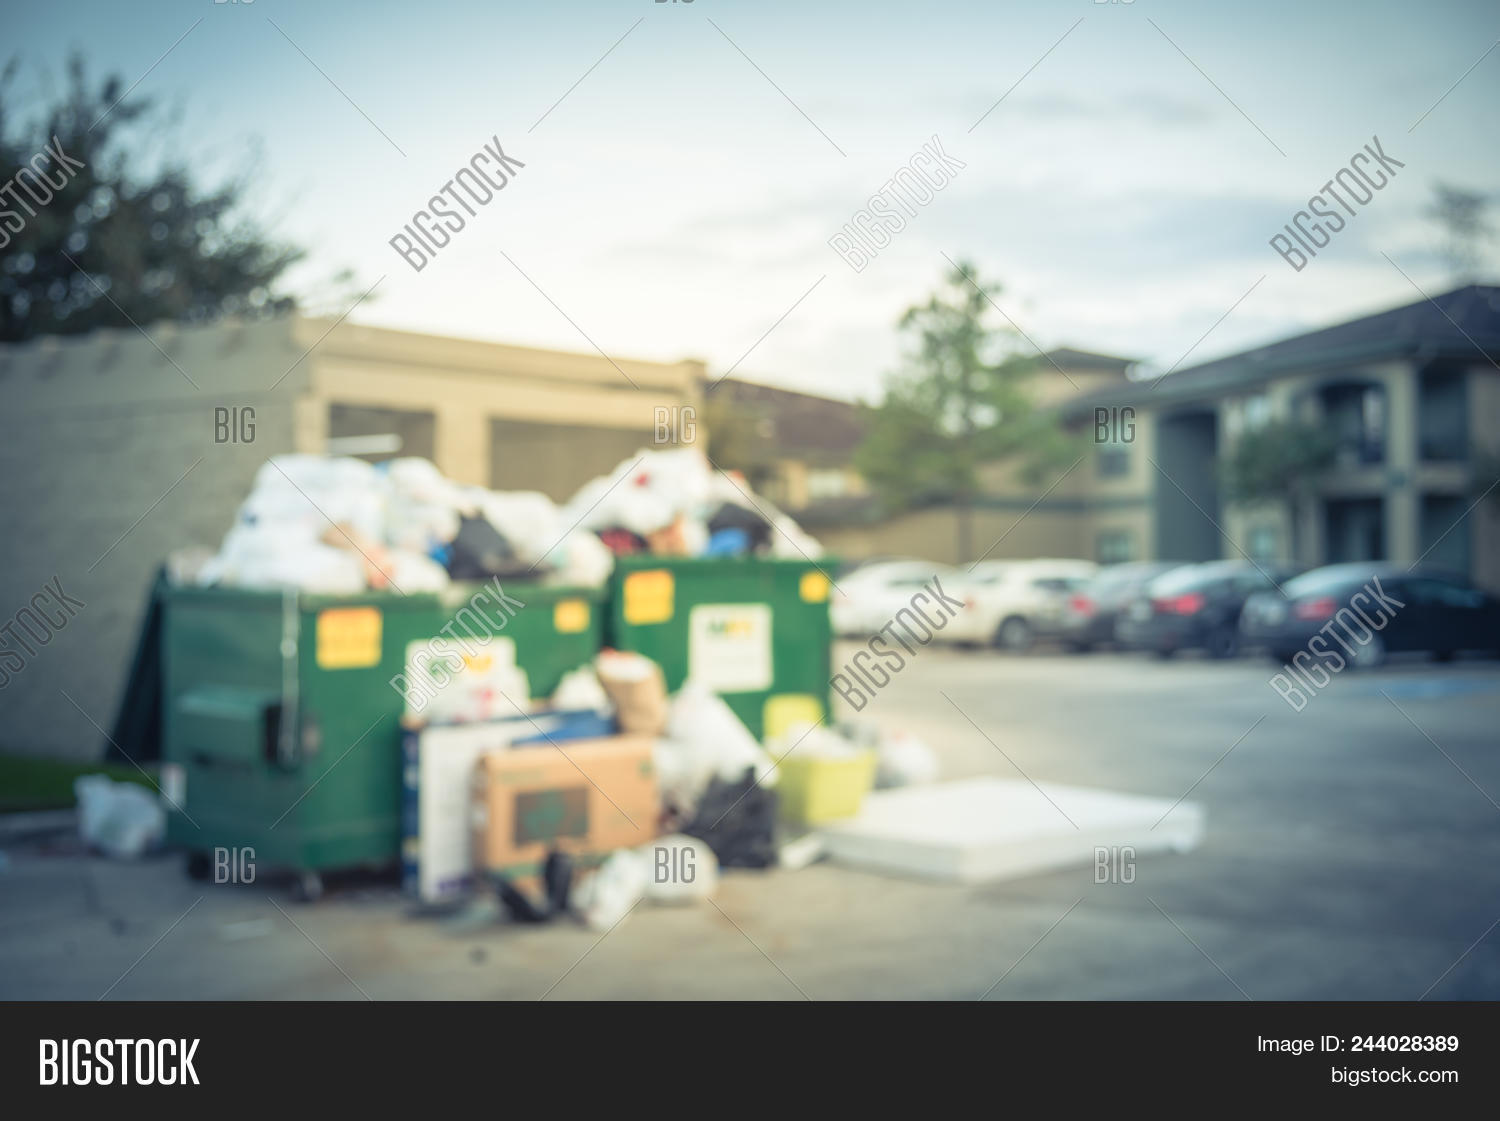 Blurred An Overflowing Dumpster At Apartment Building Yard In Humble Texas Us Overfill And On Ground Full Of Household Waste Plastic Bag Mattress